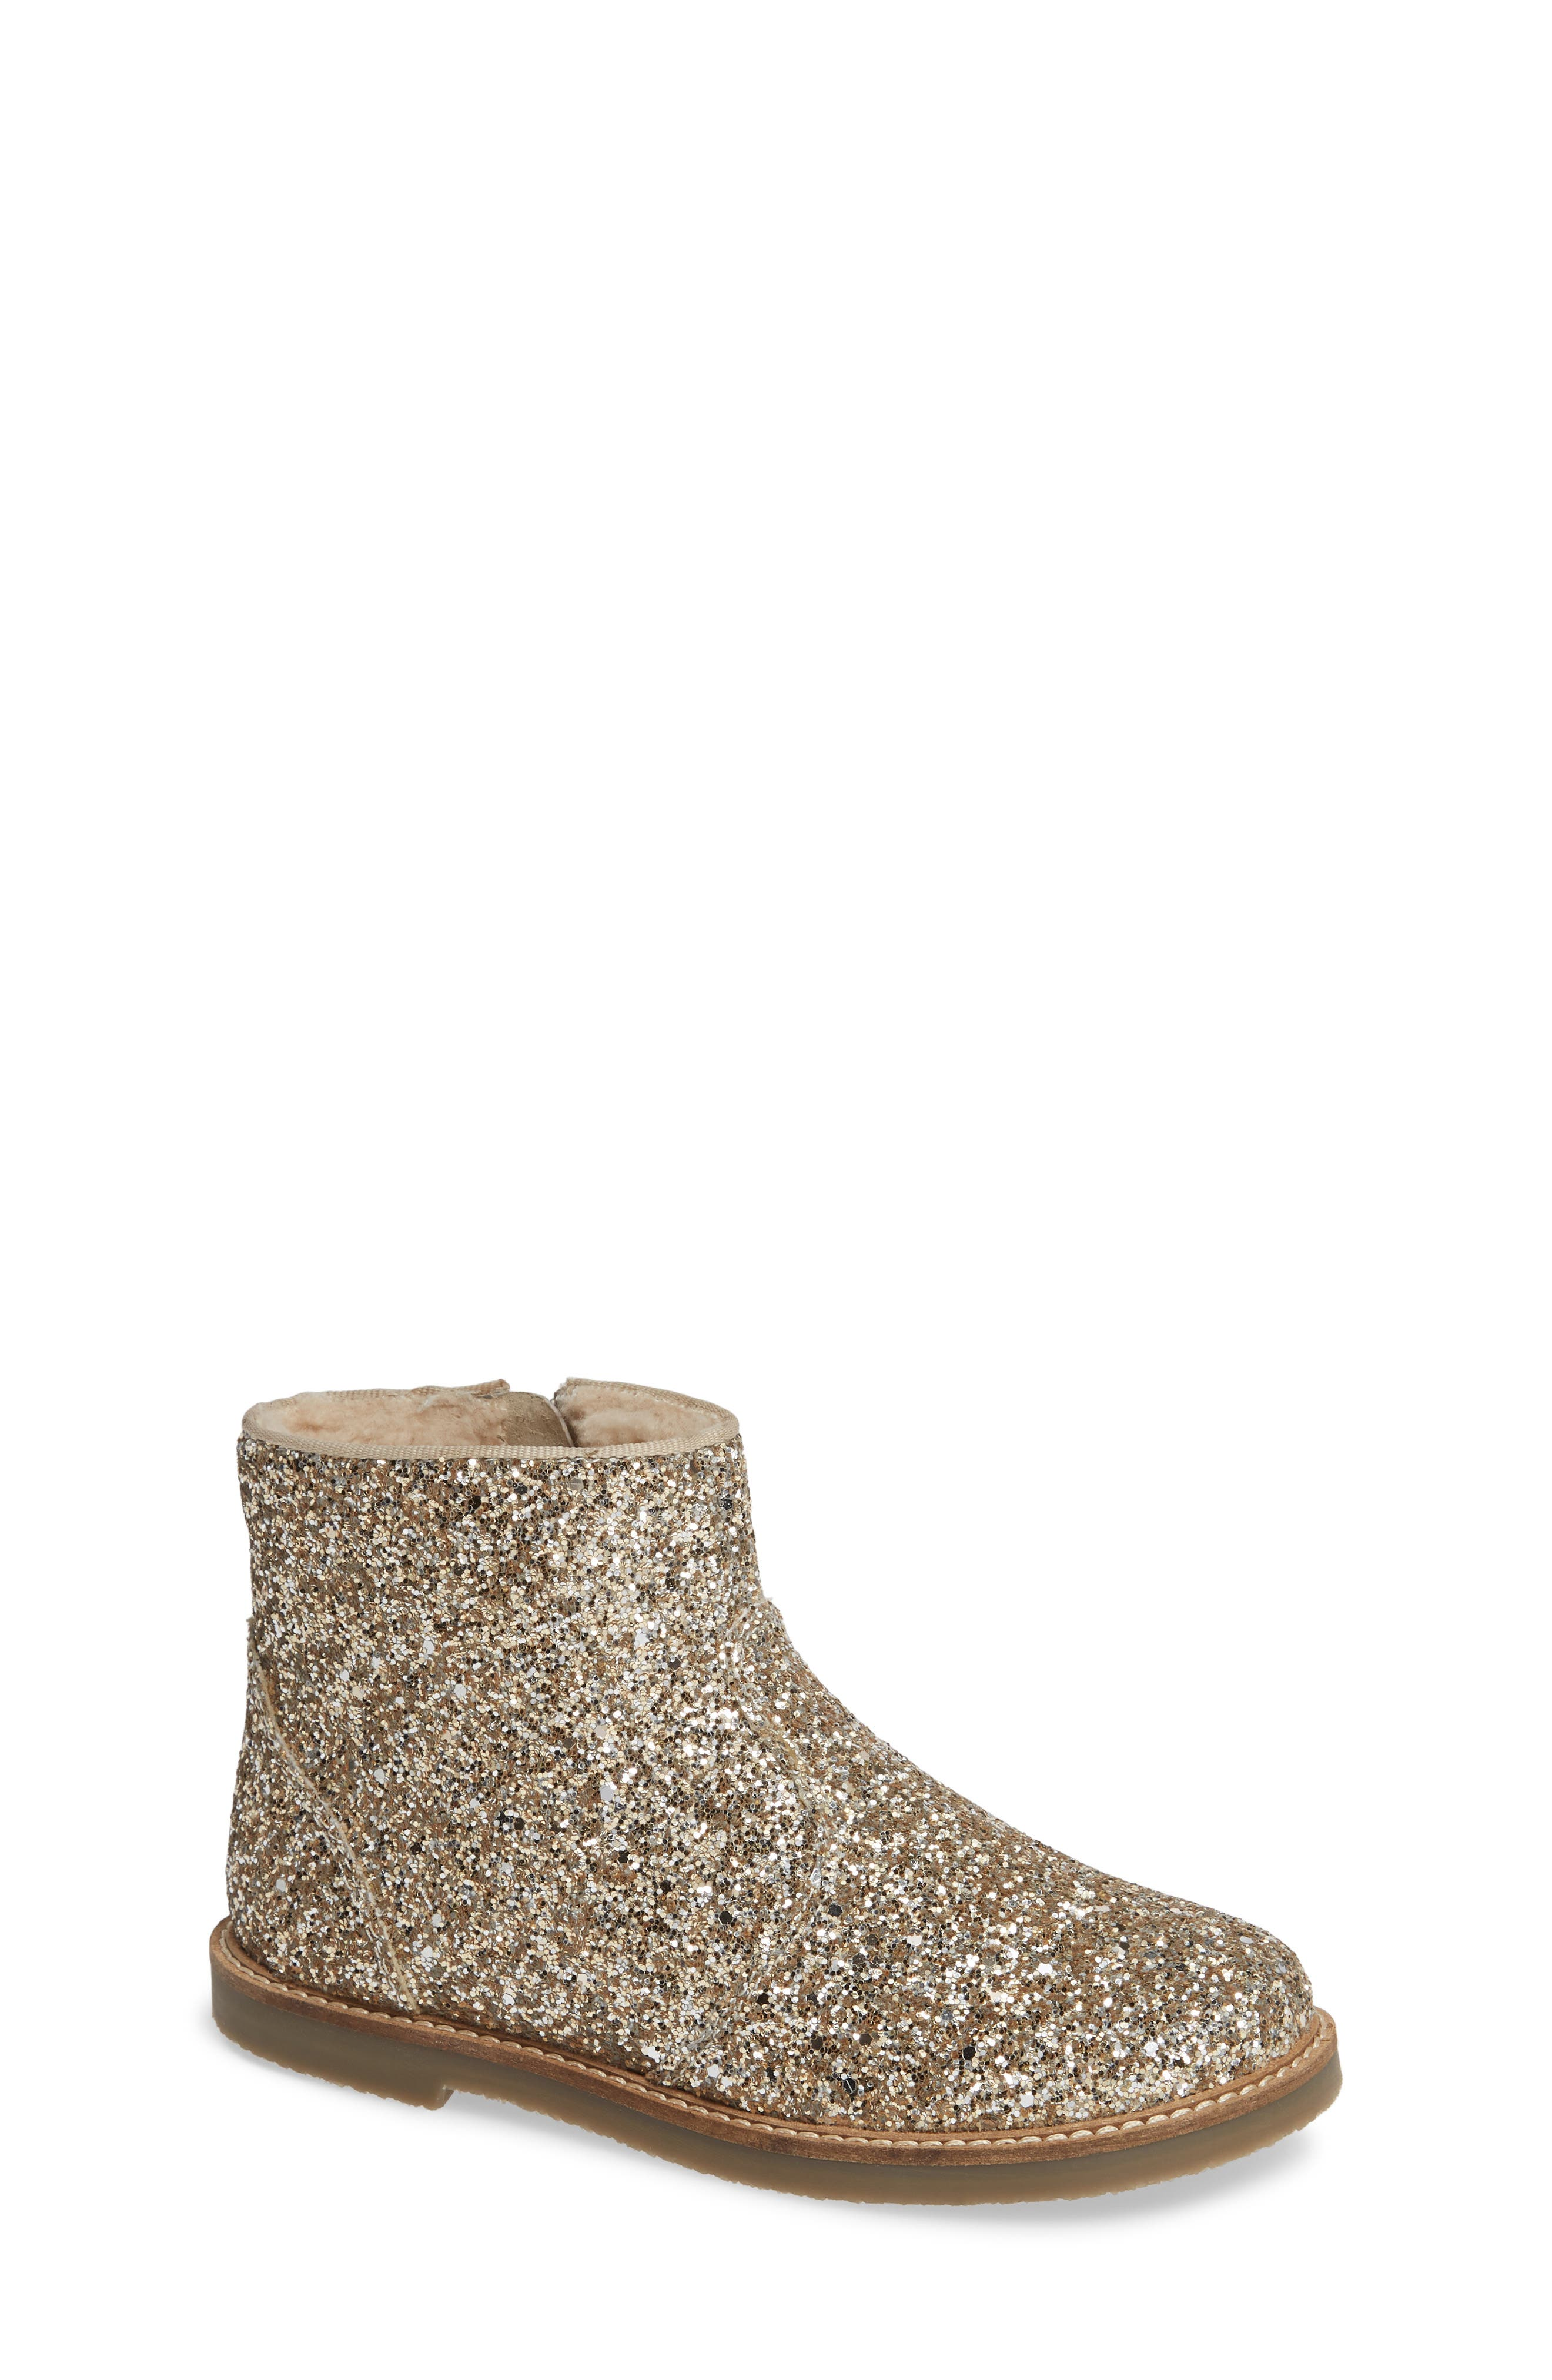 Glitter Booties,                         Main,                         color, SILVER/ GOLD